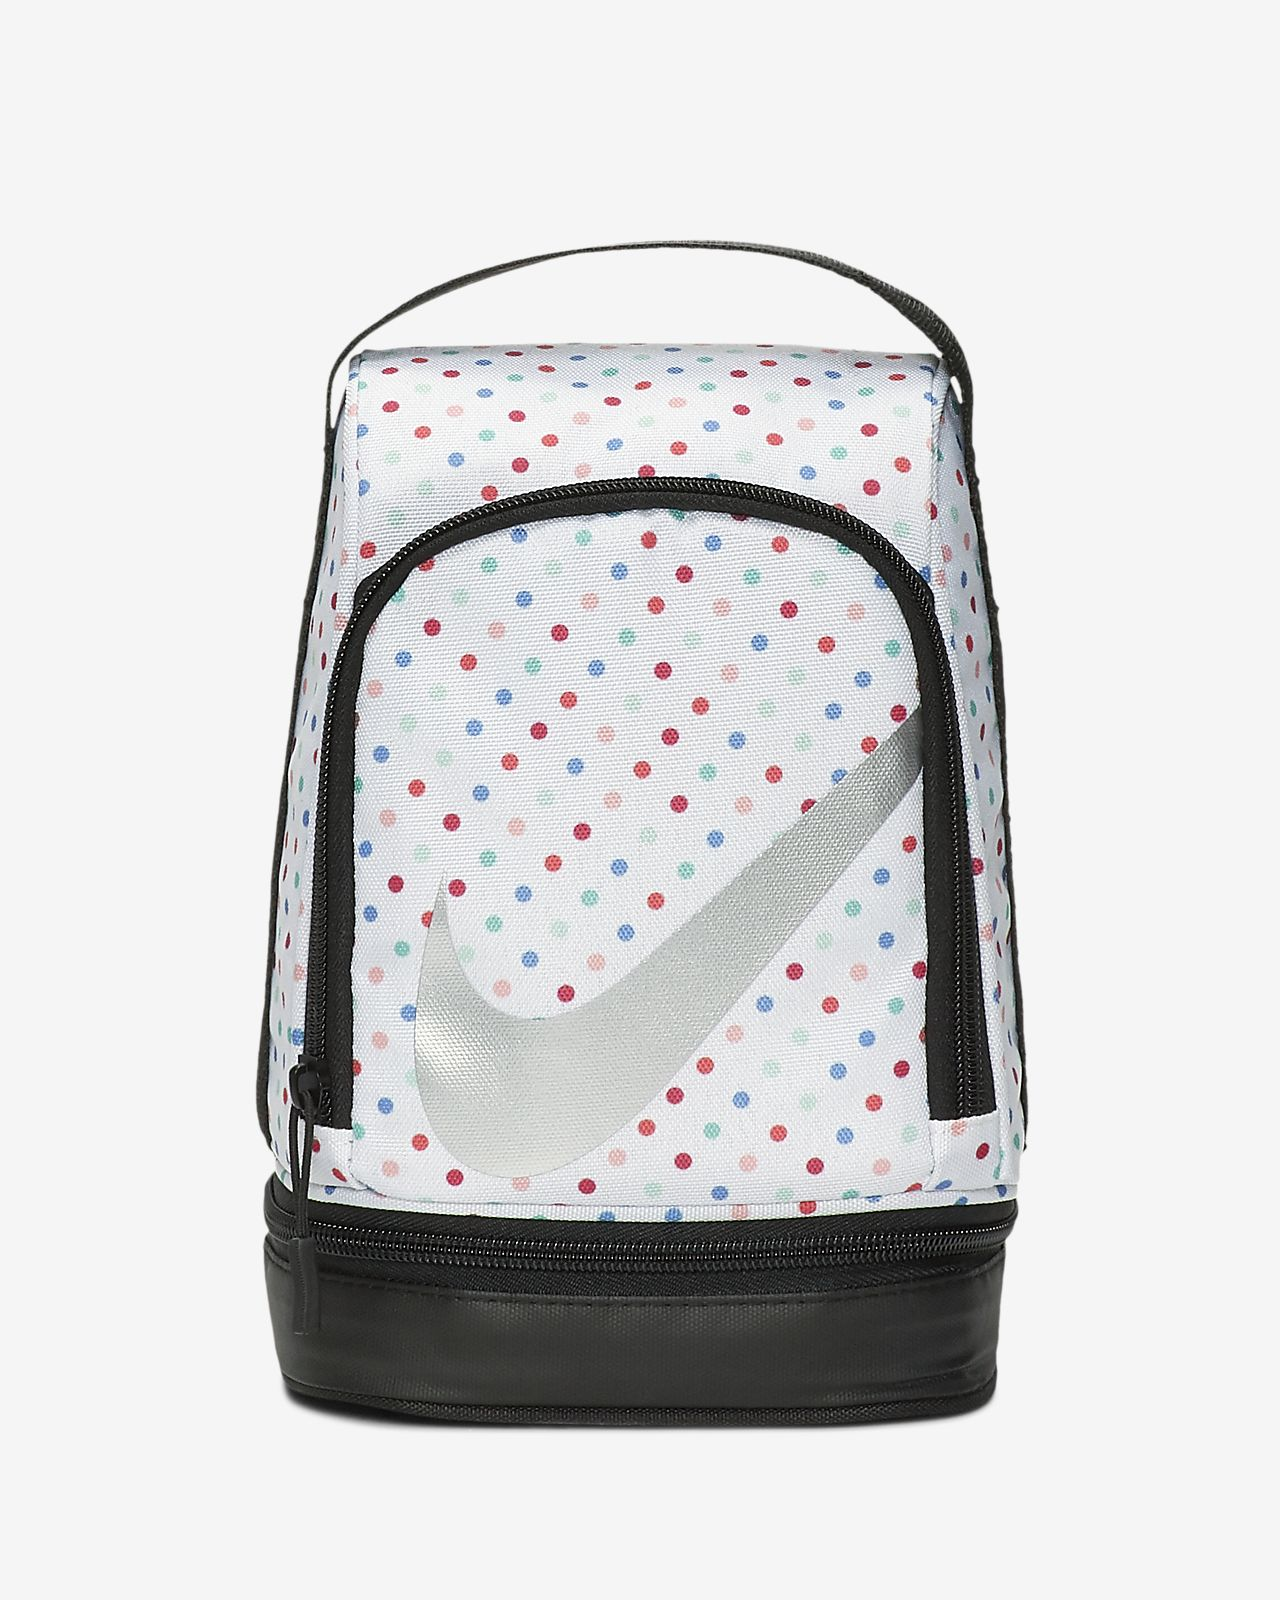 48c0b4a2f858 Nike Fuel Pack 2.0 Kids  Lunch Bag. Nike.com